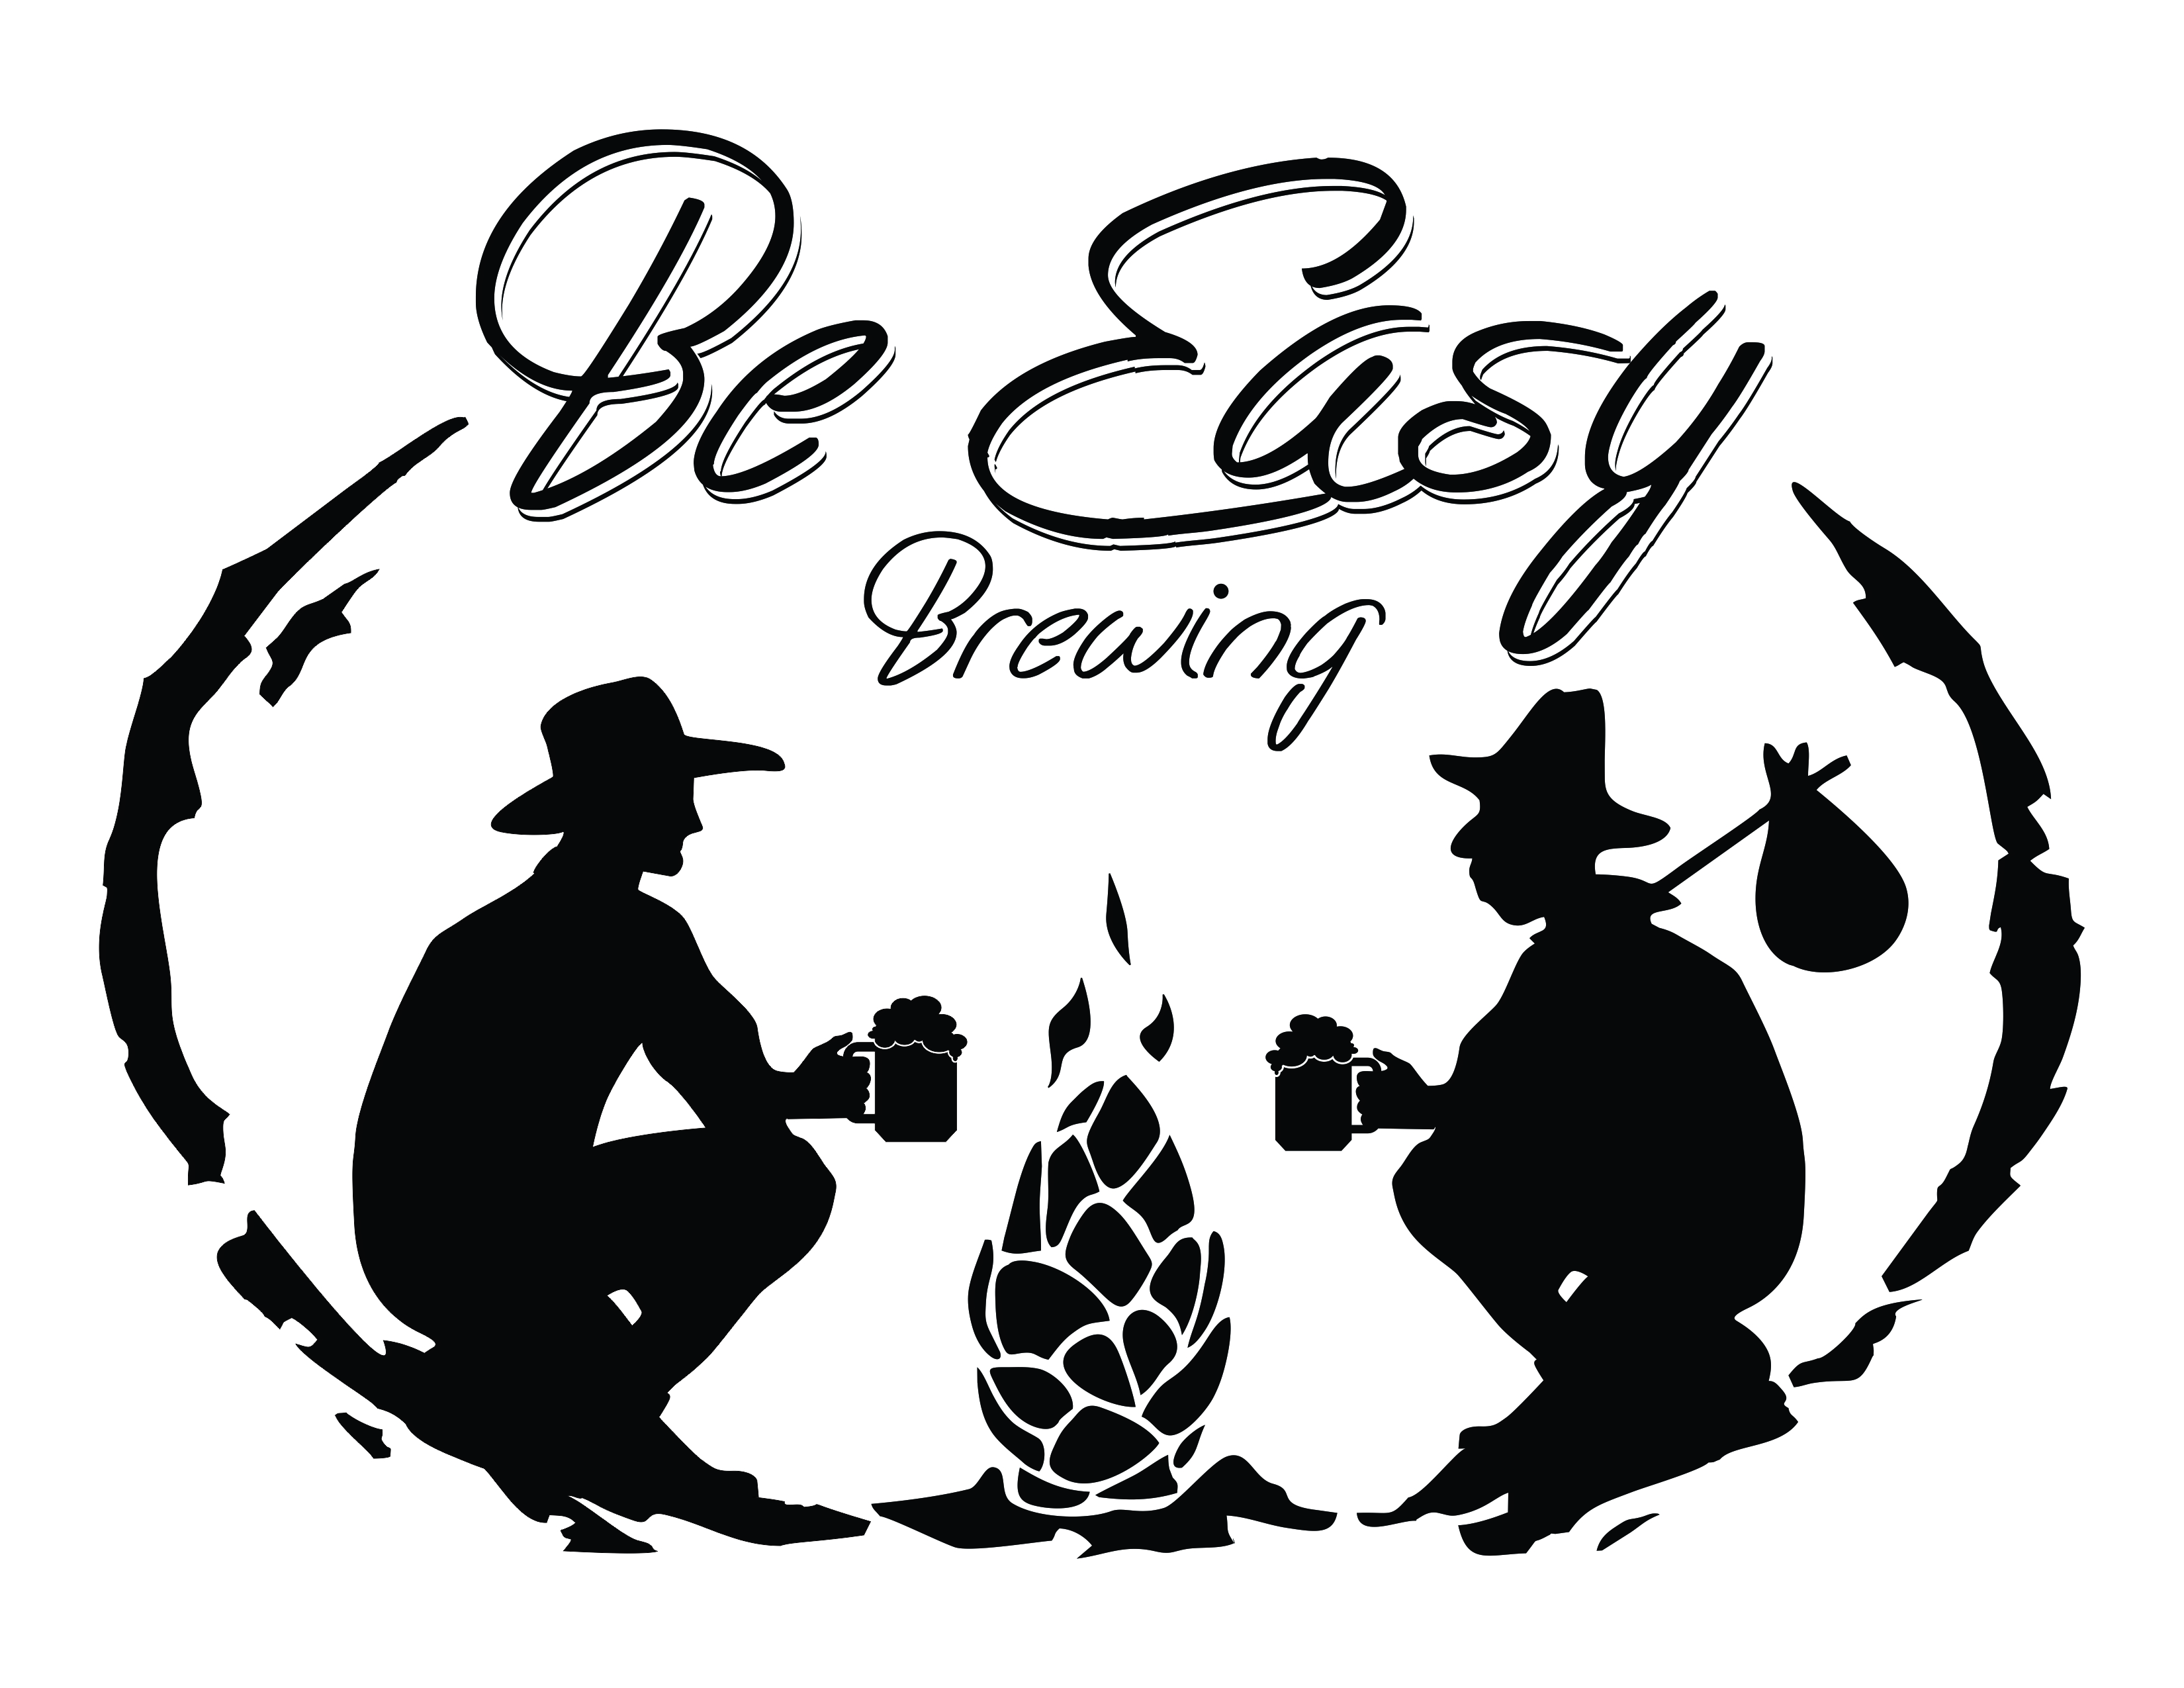 Be Easy Brewing Logo